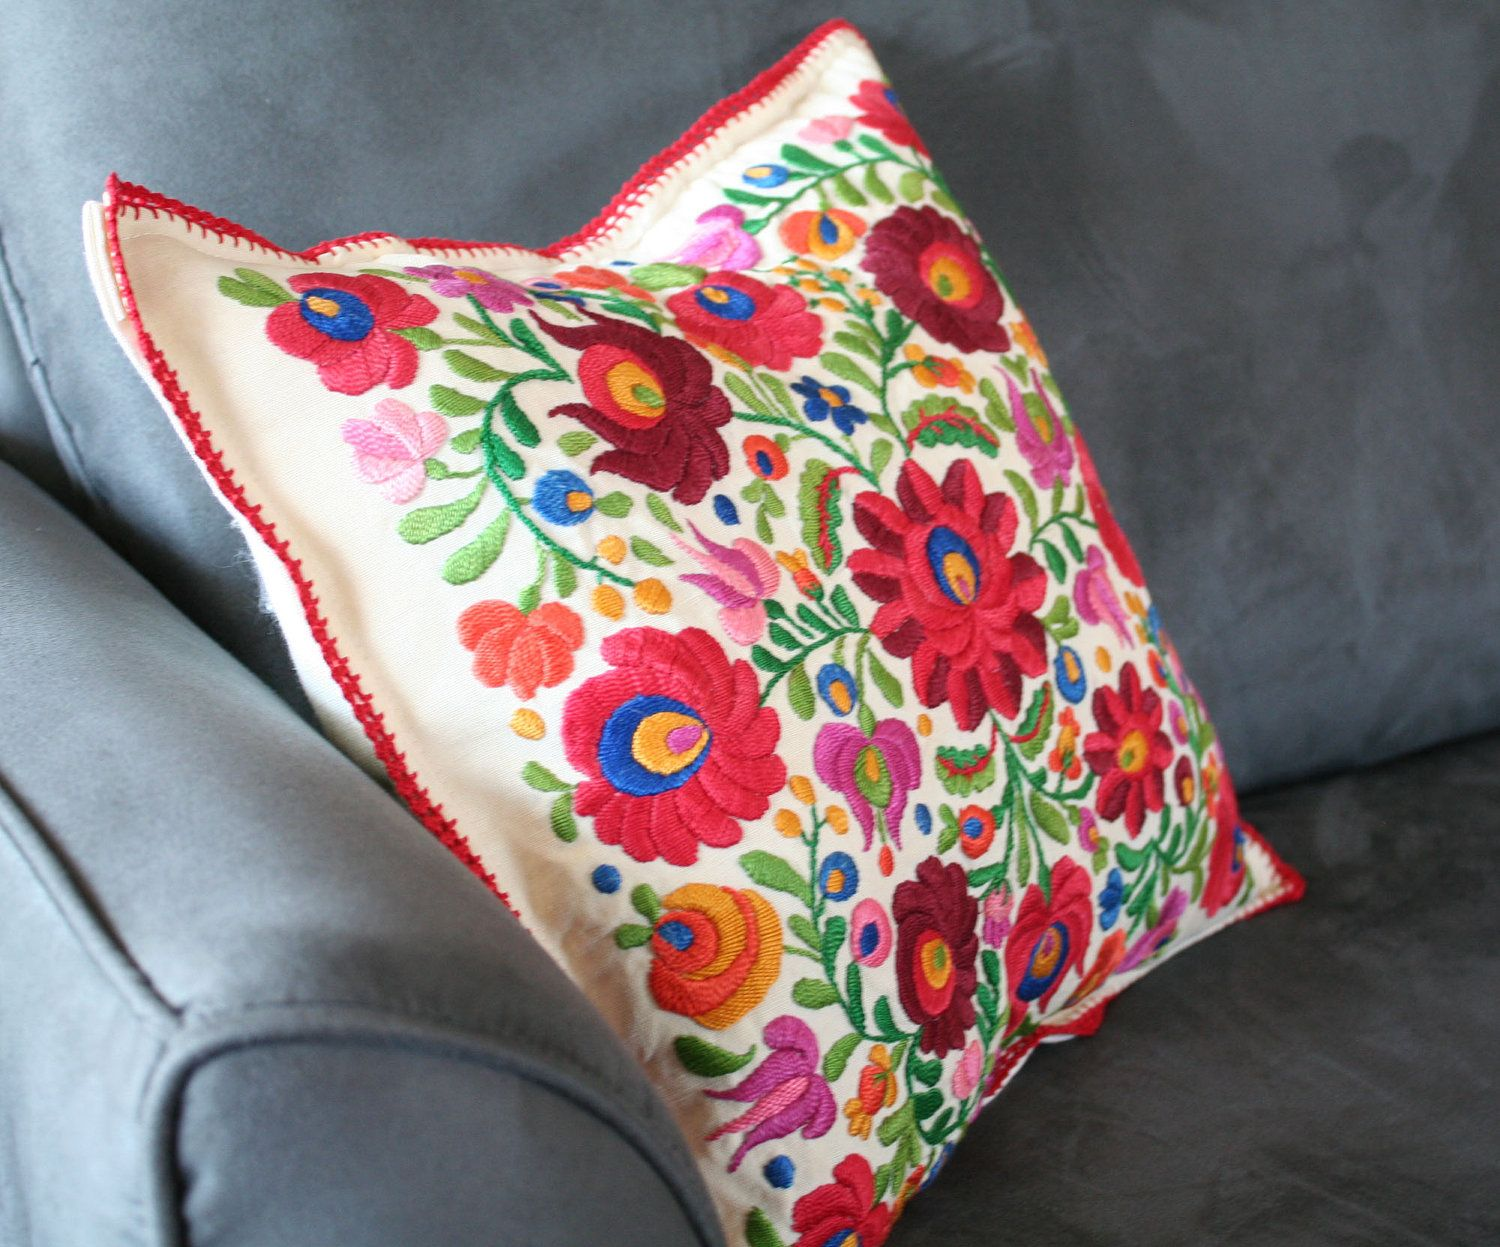 Colourfull Pillow Case Brightens Up A Dull Couch